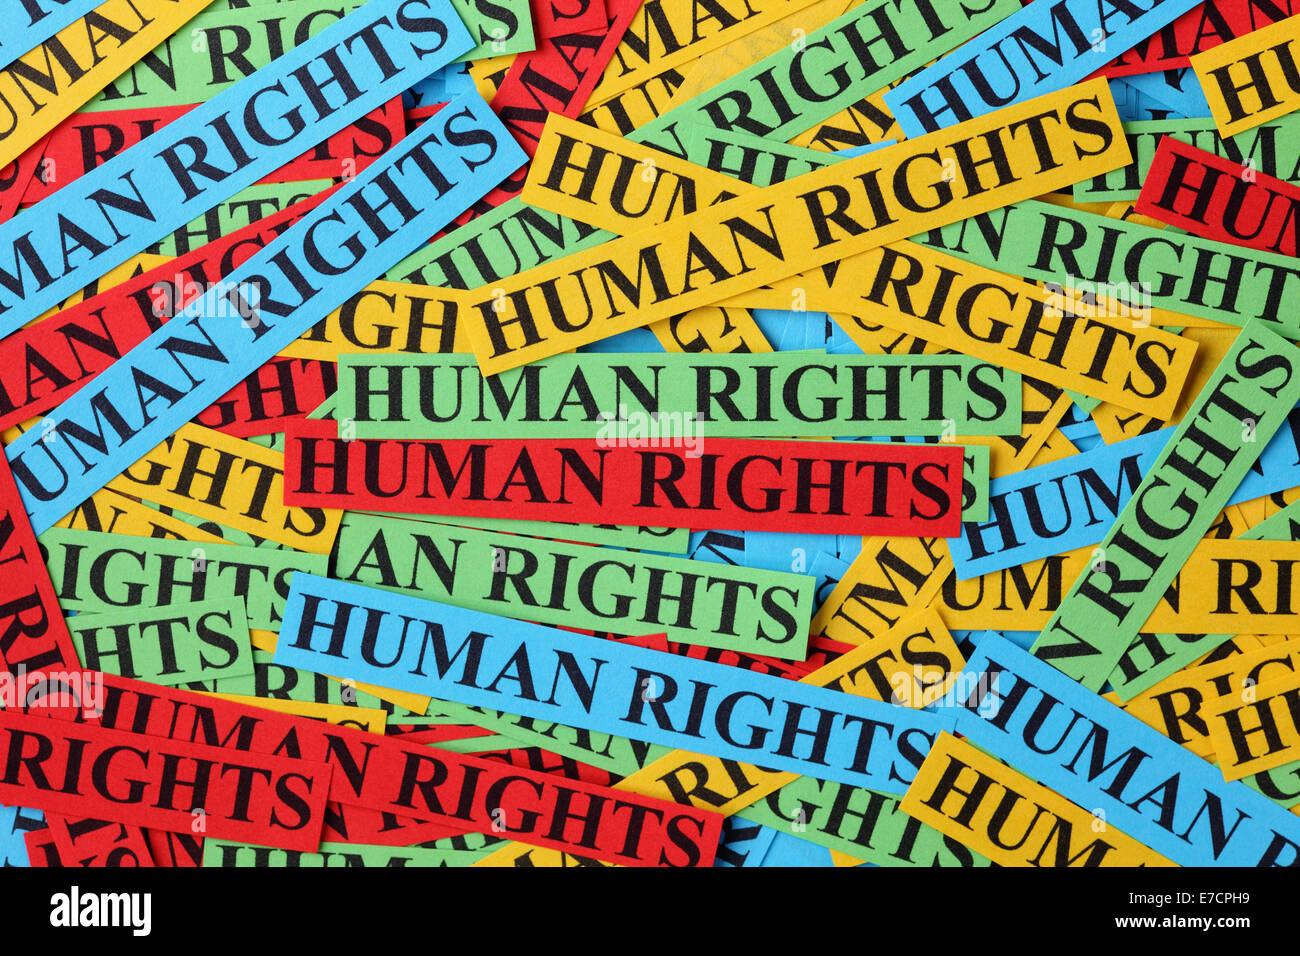 Pile of colorful paper notes with words 'Human Rights'. Human rights concept. - Stock Image